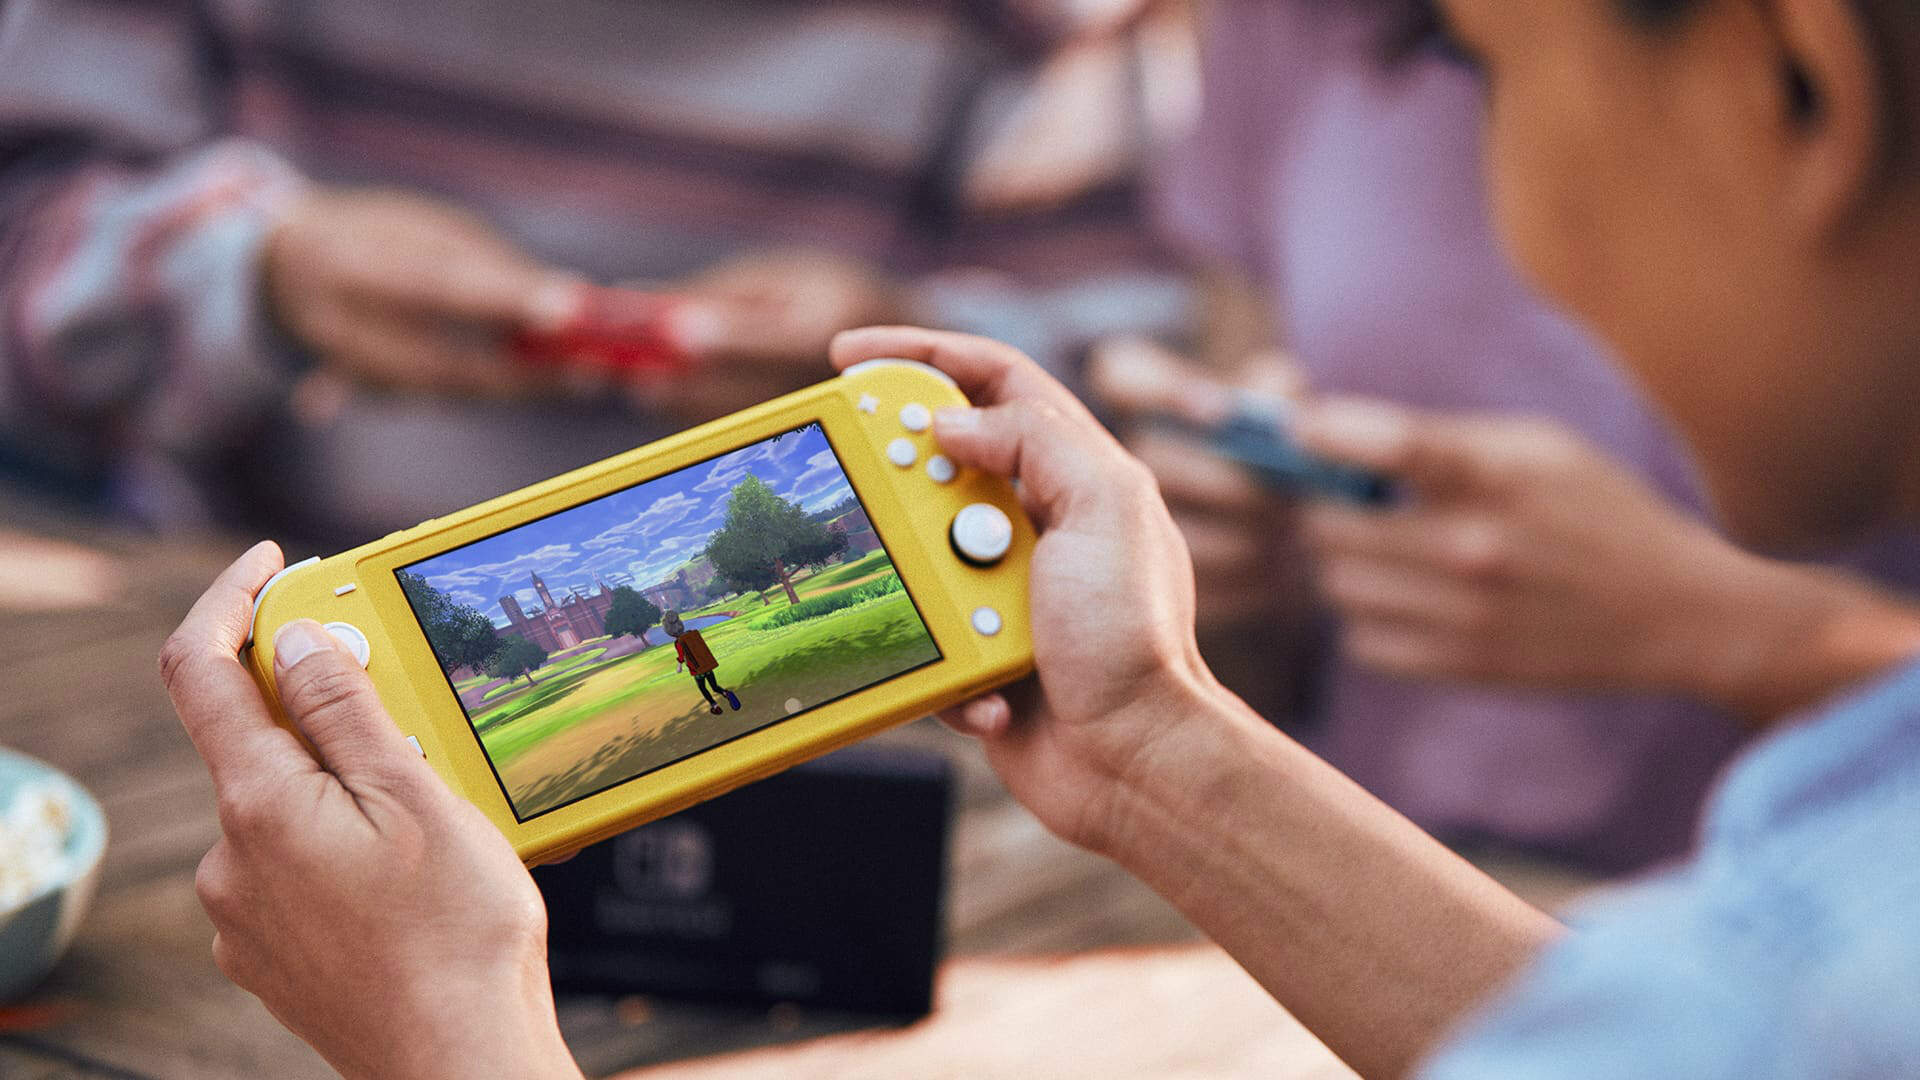 Nintendo Says There's No Plans for New Switch Model in 2020